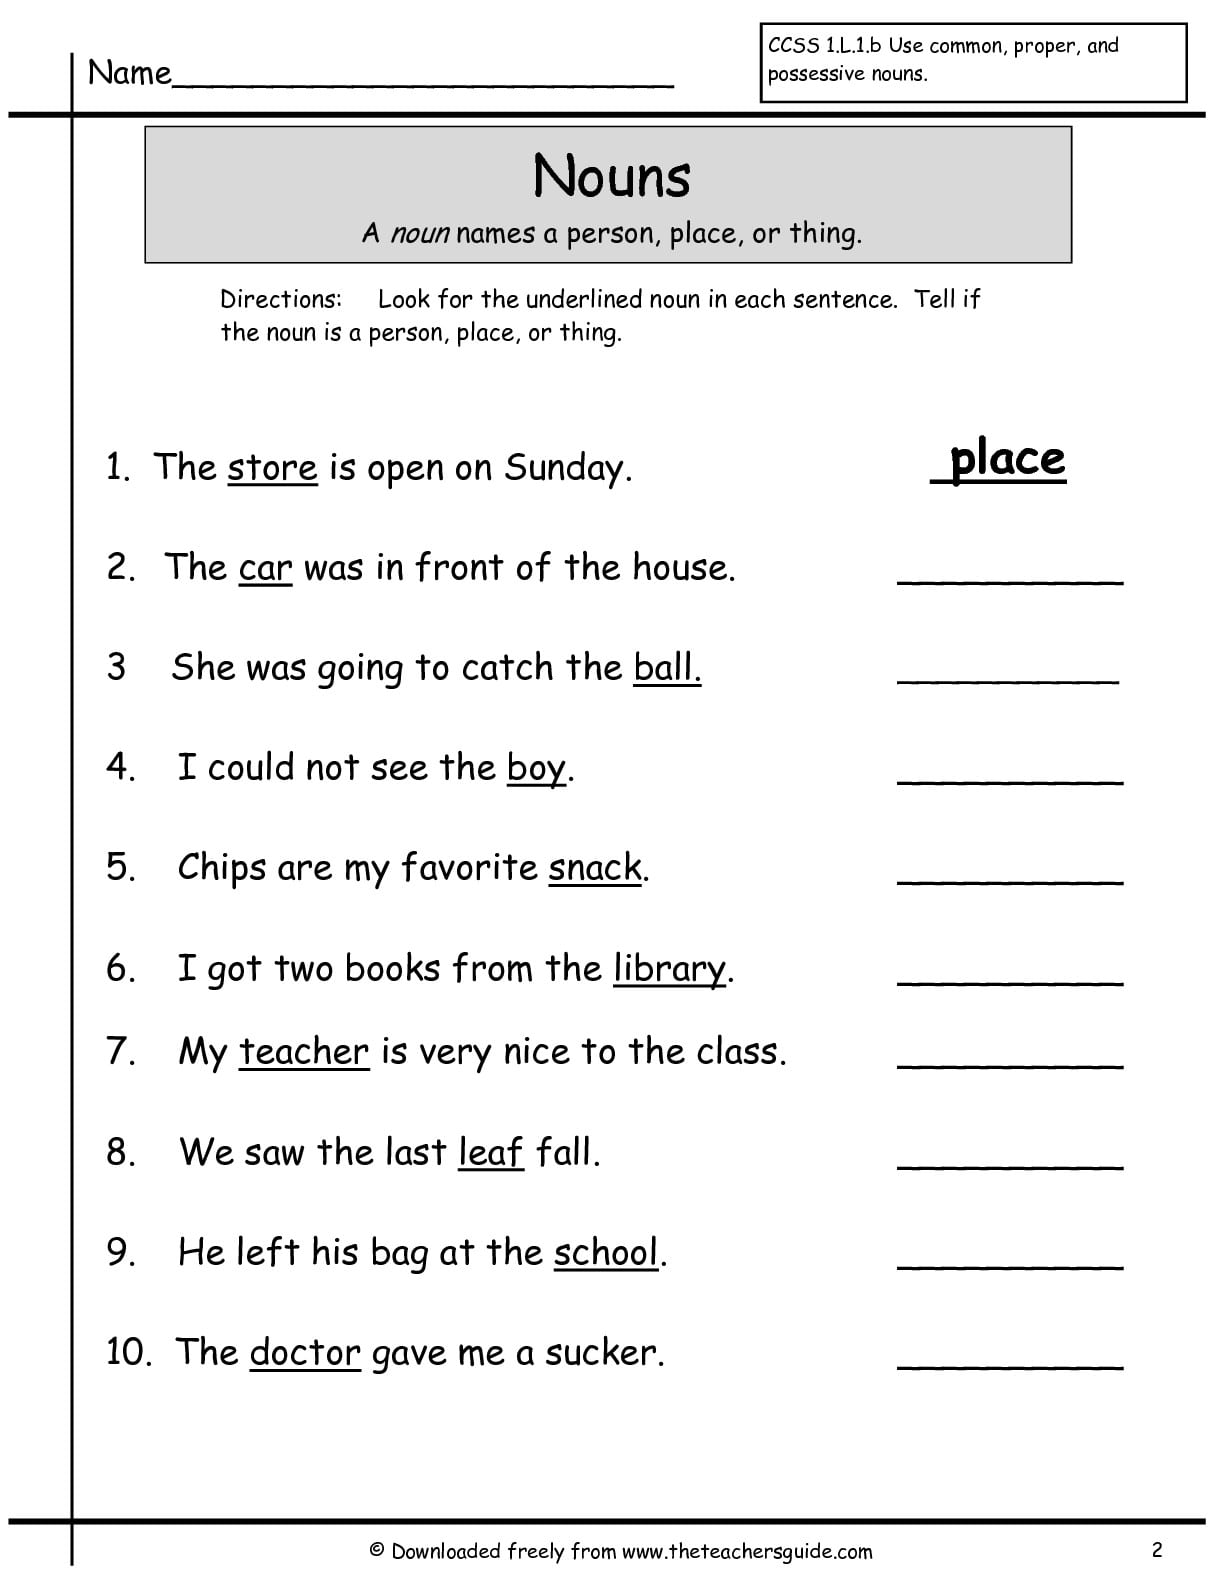 Nouns Worksheets For First Grade